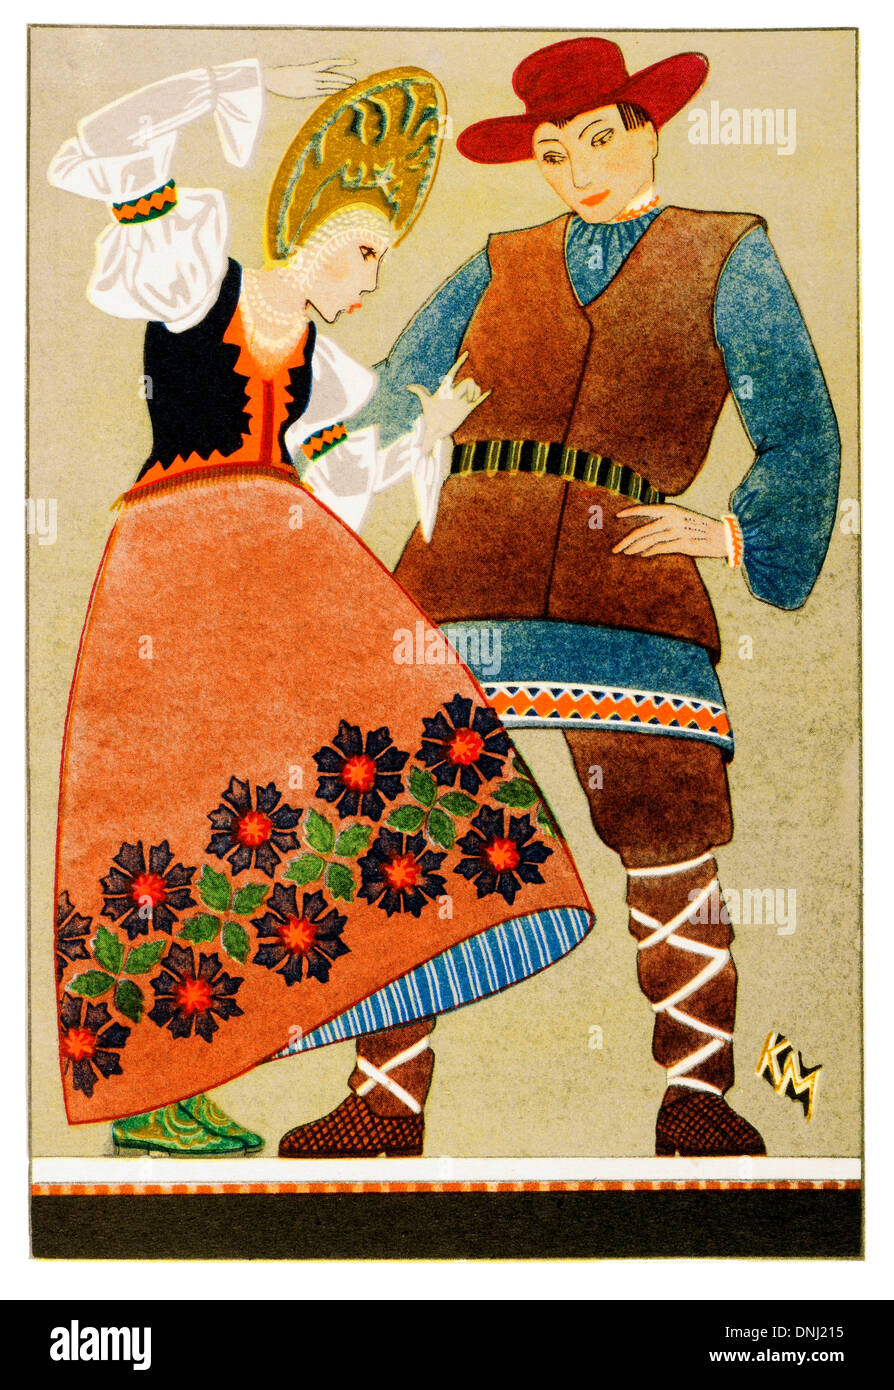 Russia Traditional costume early 20th century lithograph - Stock Image